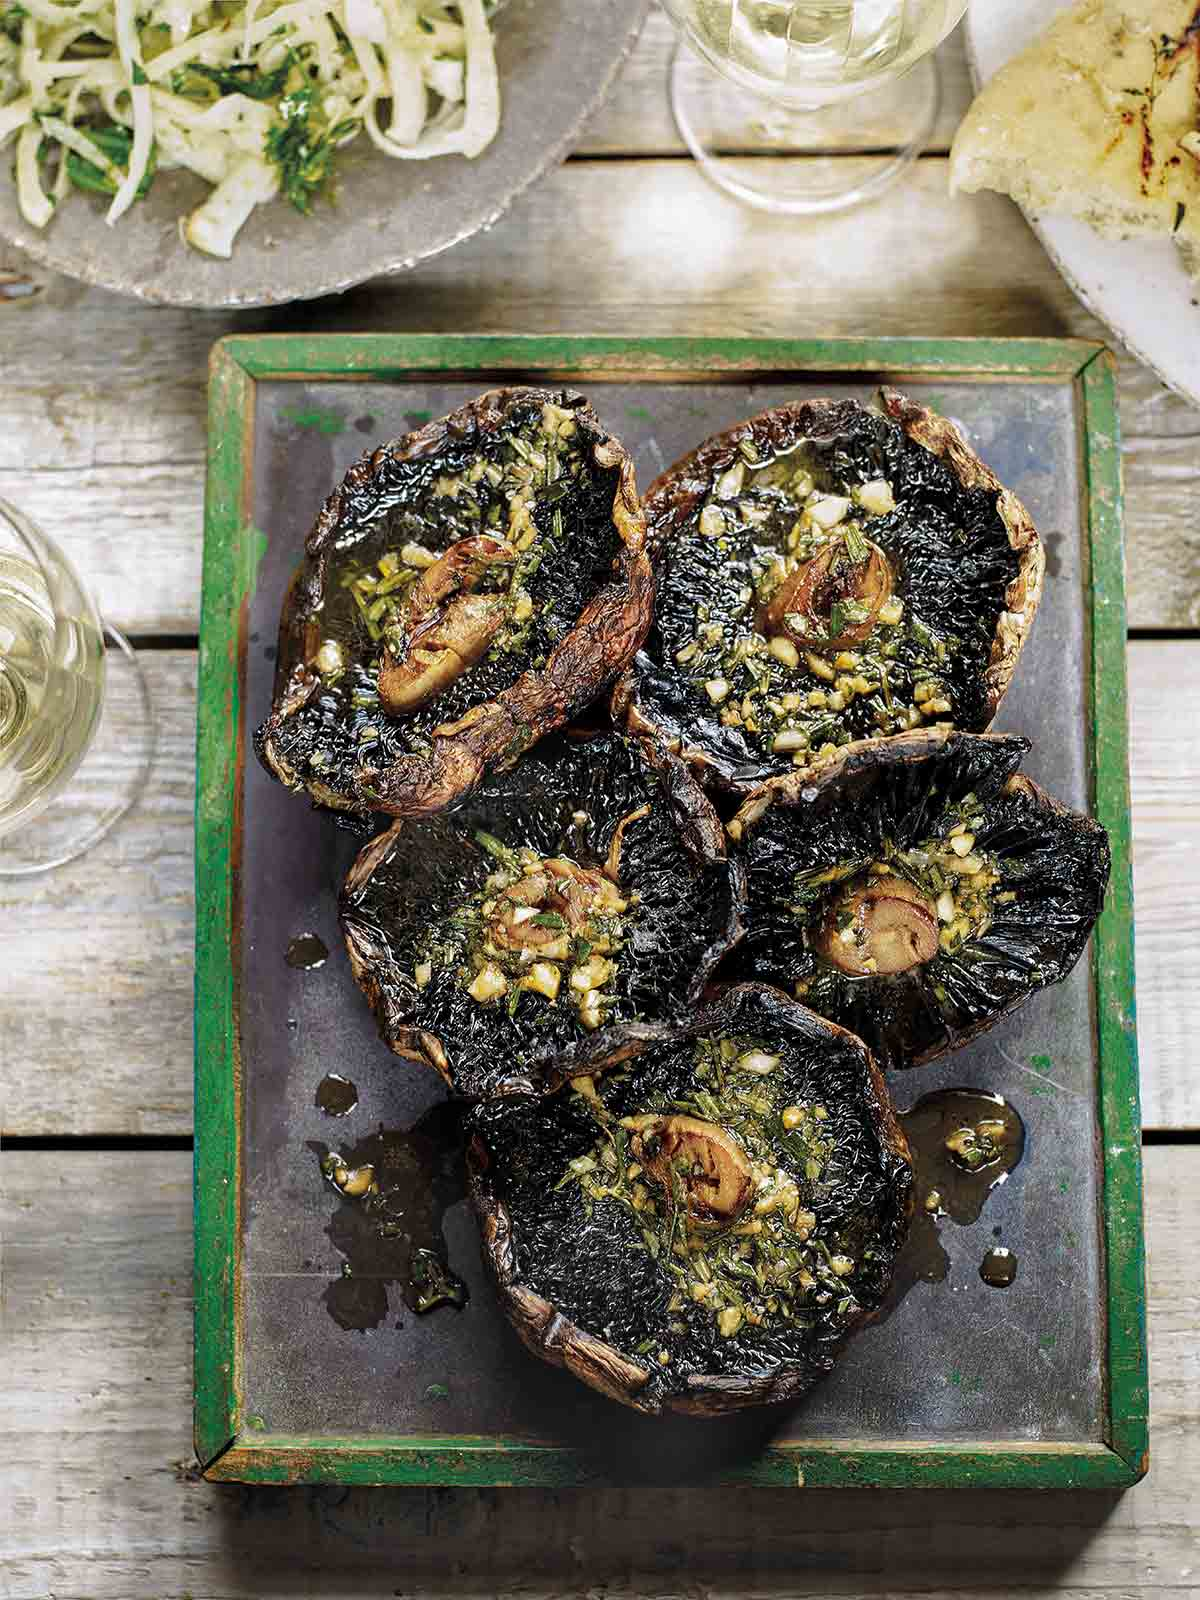 A metal platter holding five grilled portobello mushrooms, topped with garlic rosemary butter.